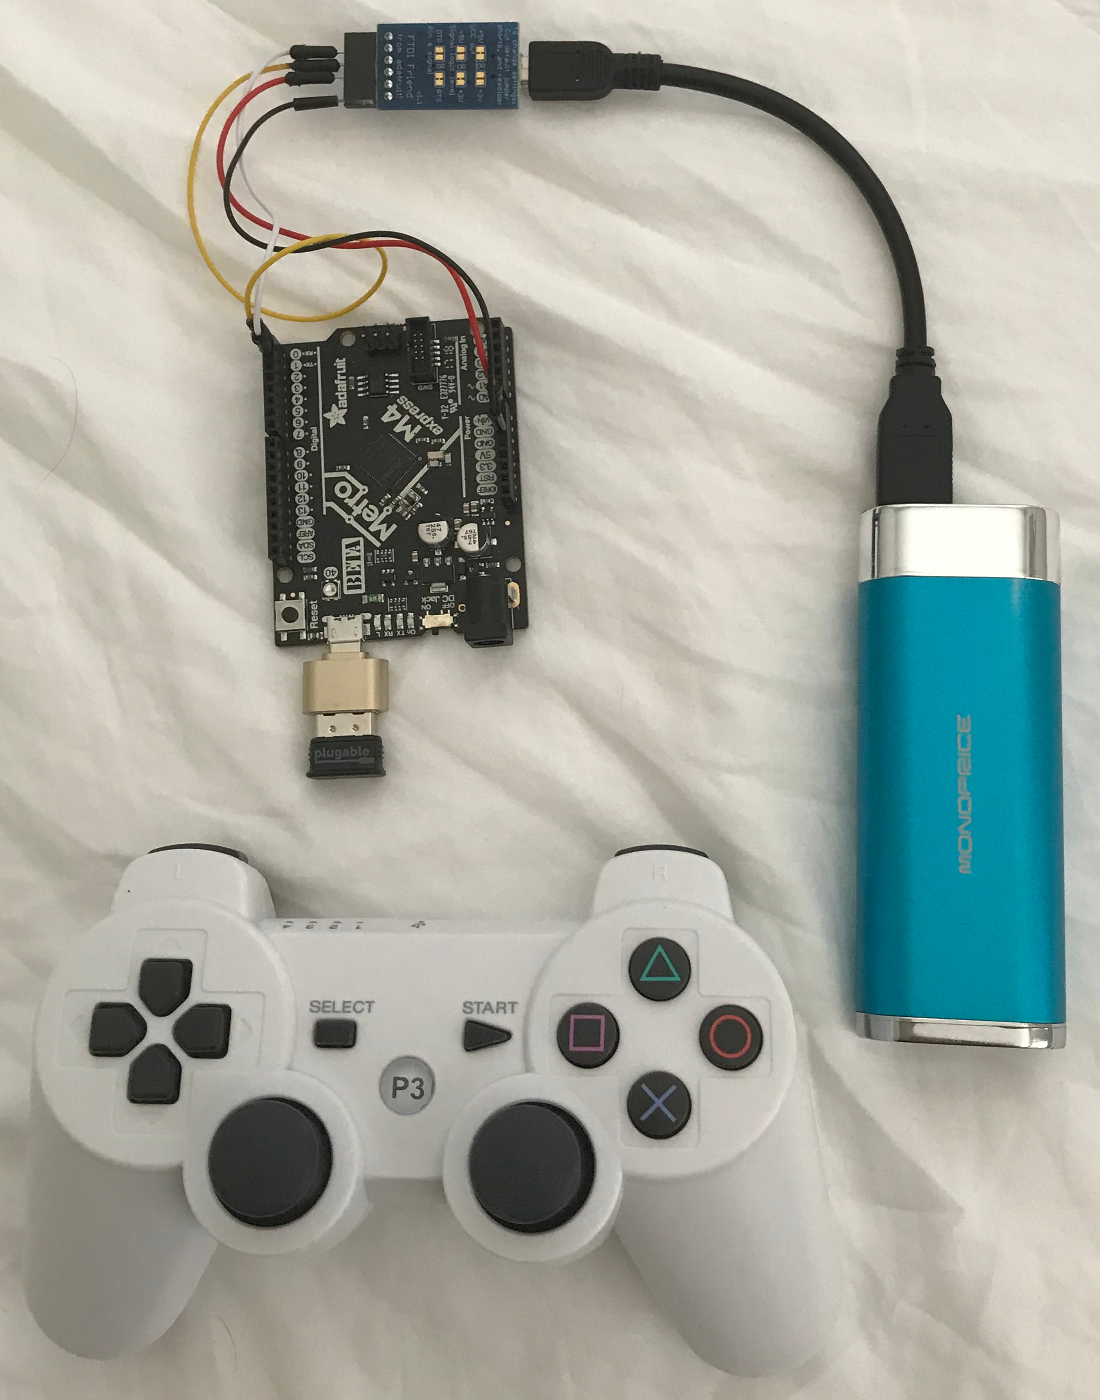 Adafruit M4 (SAMD51) and Playstation 3 Controller over Bluetooth